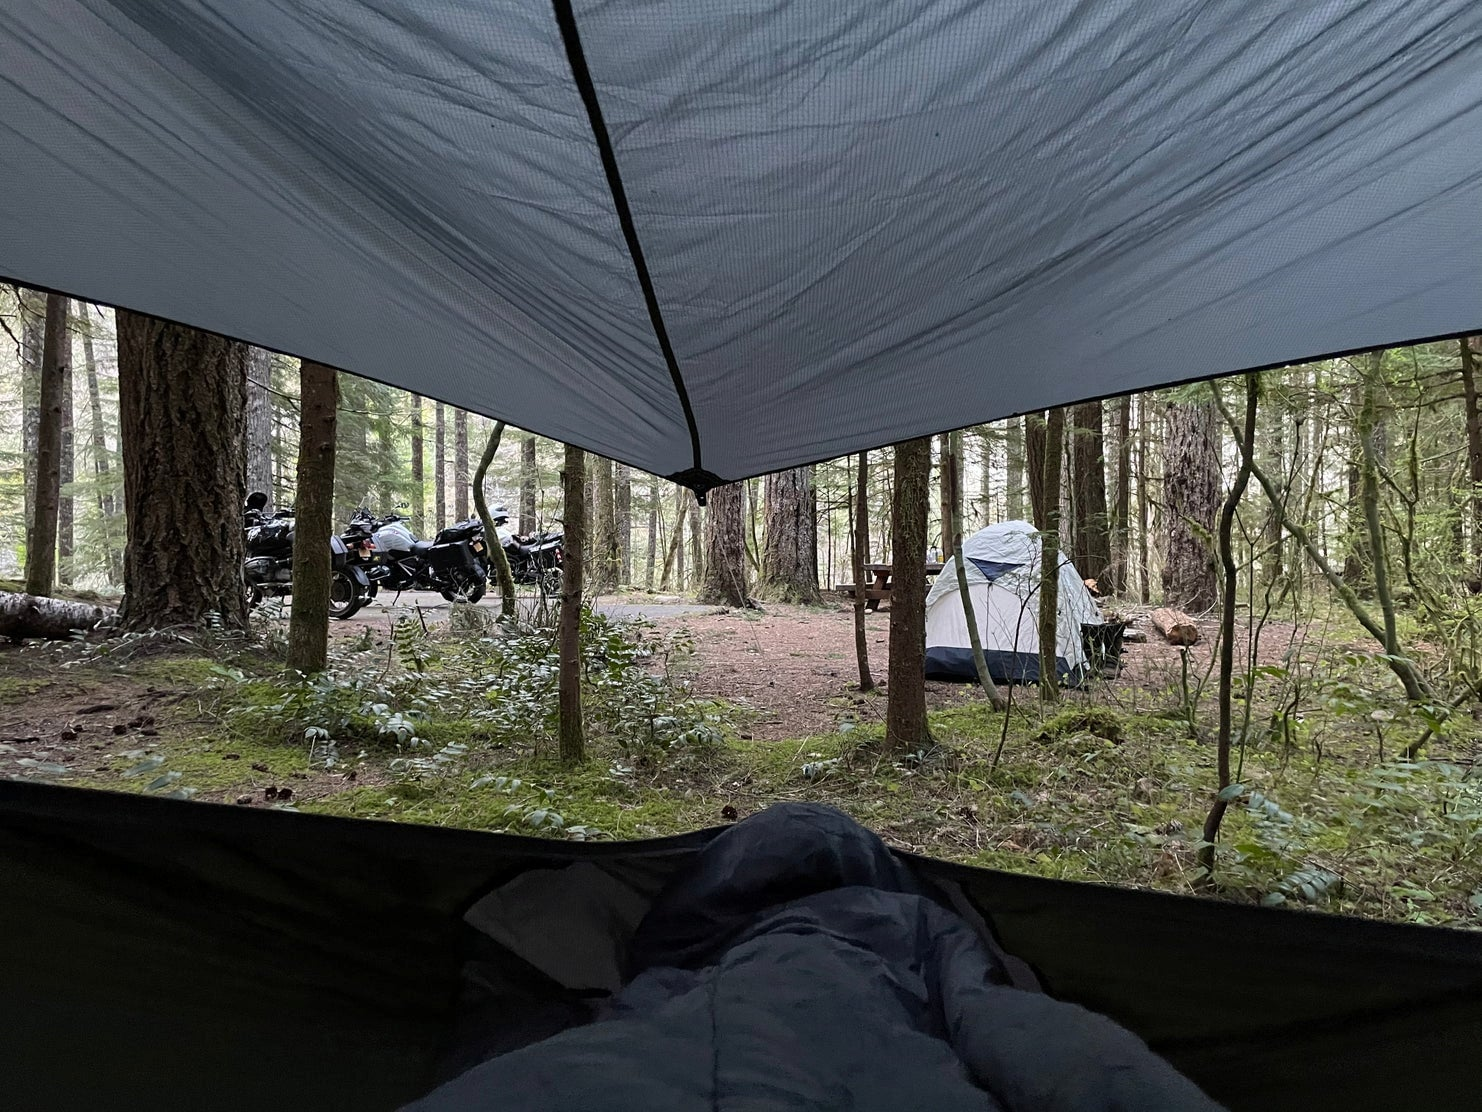 Photo through the hammock under a rainfly looking out at a tent in the forest at Mt. St. Helens.